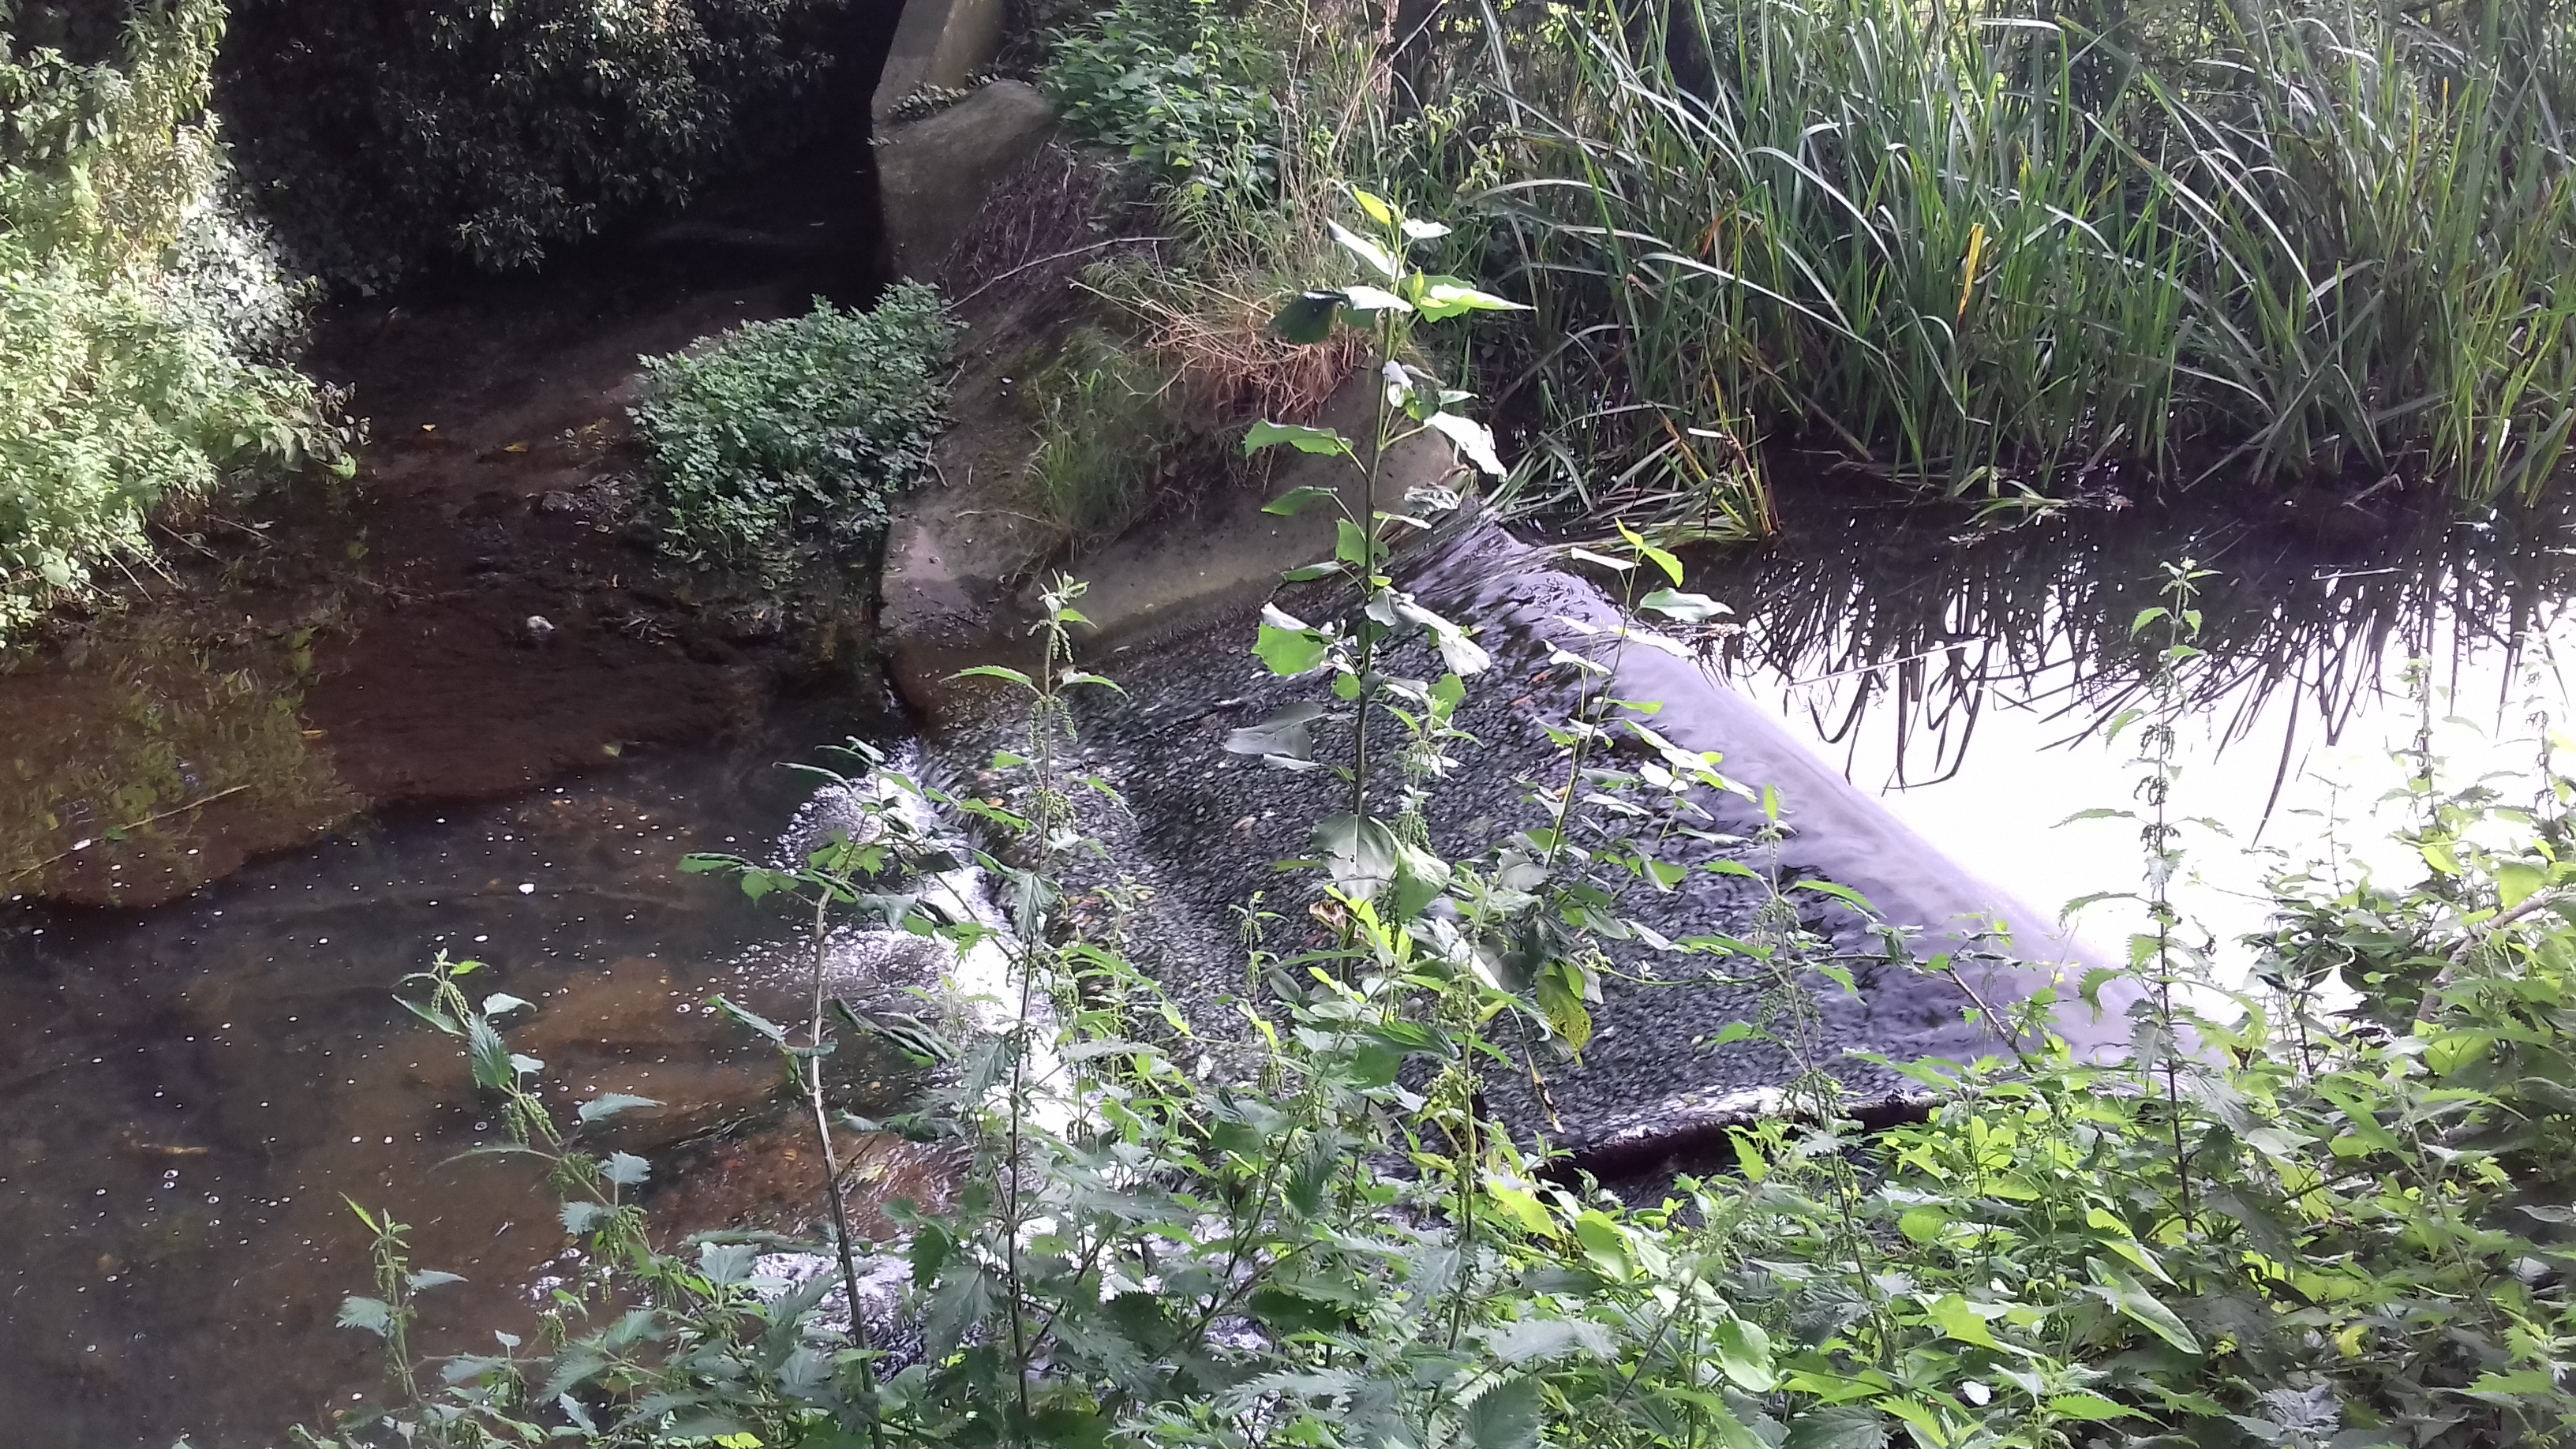 Tiffey weir removal: aiding fish migration along the river